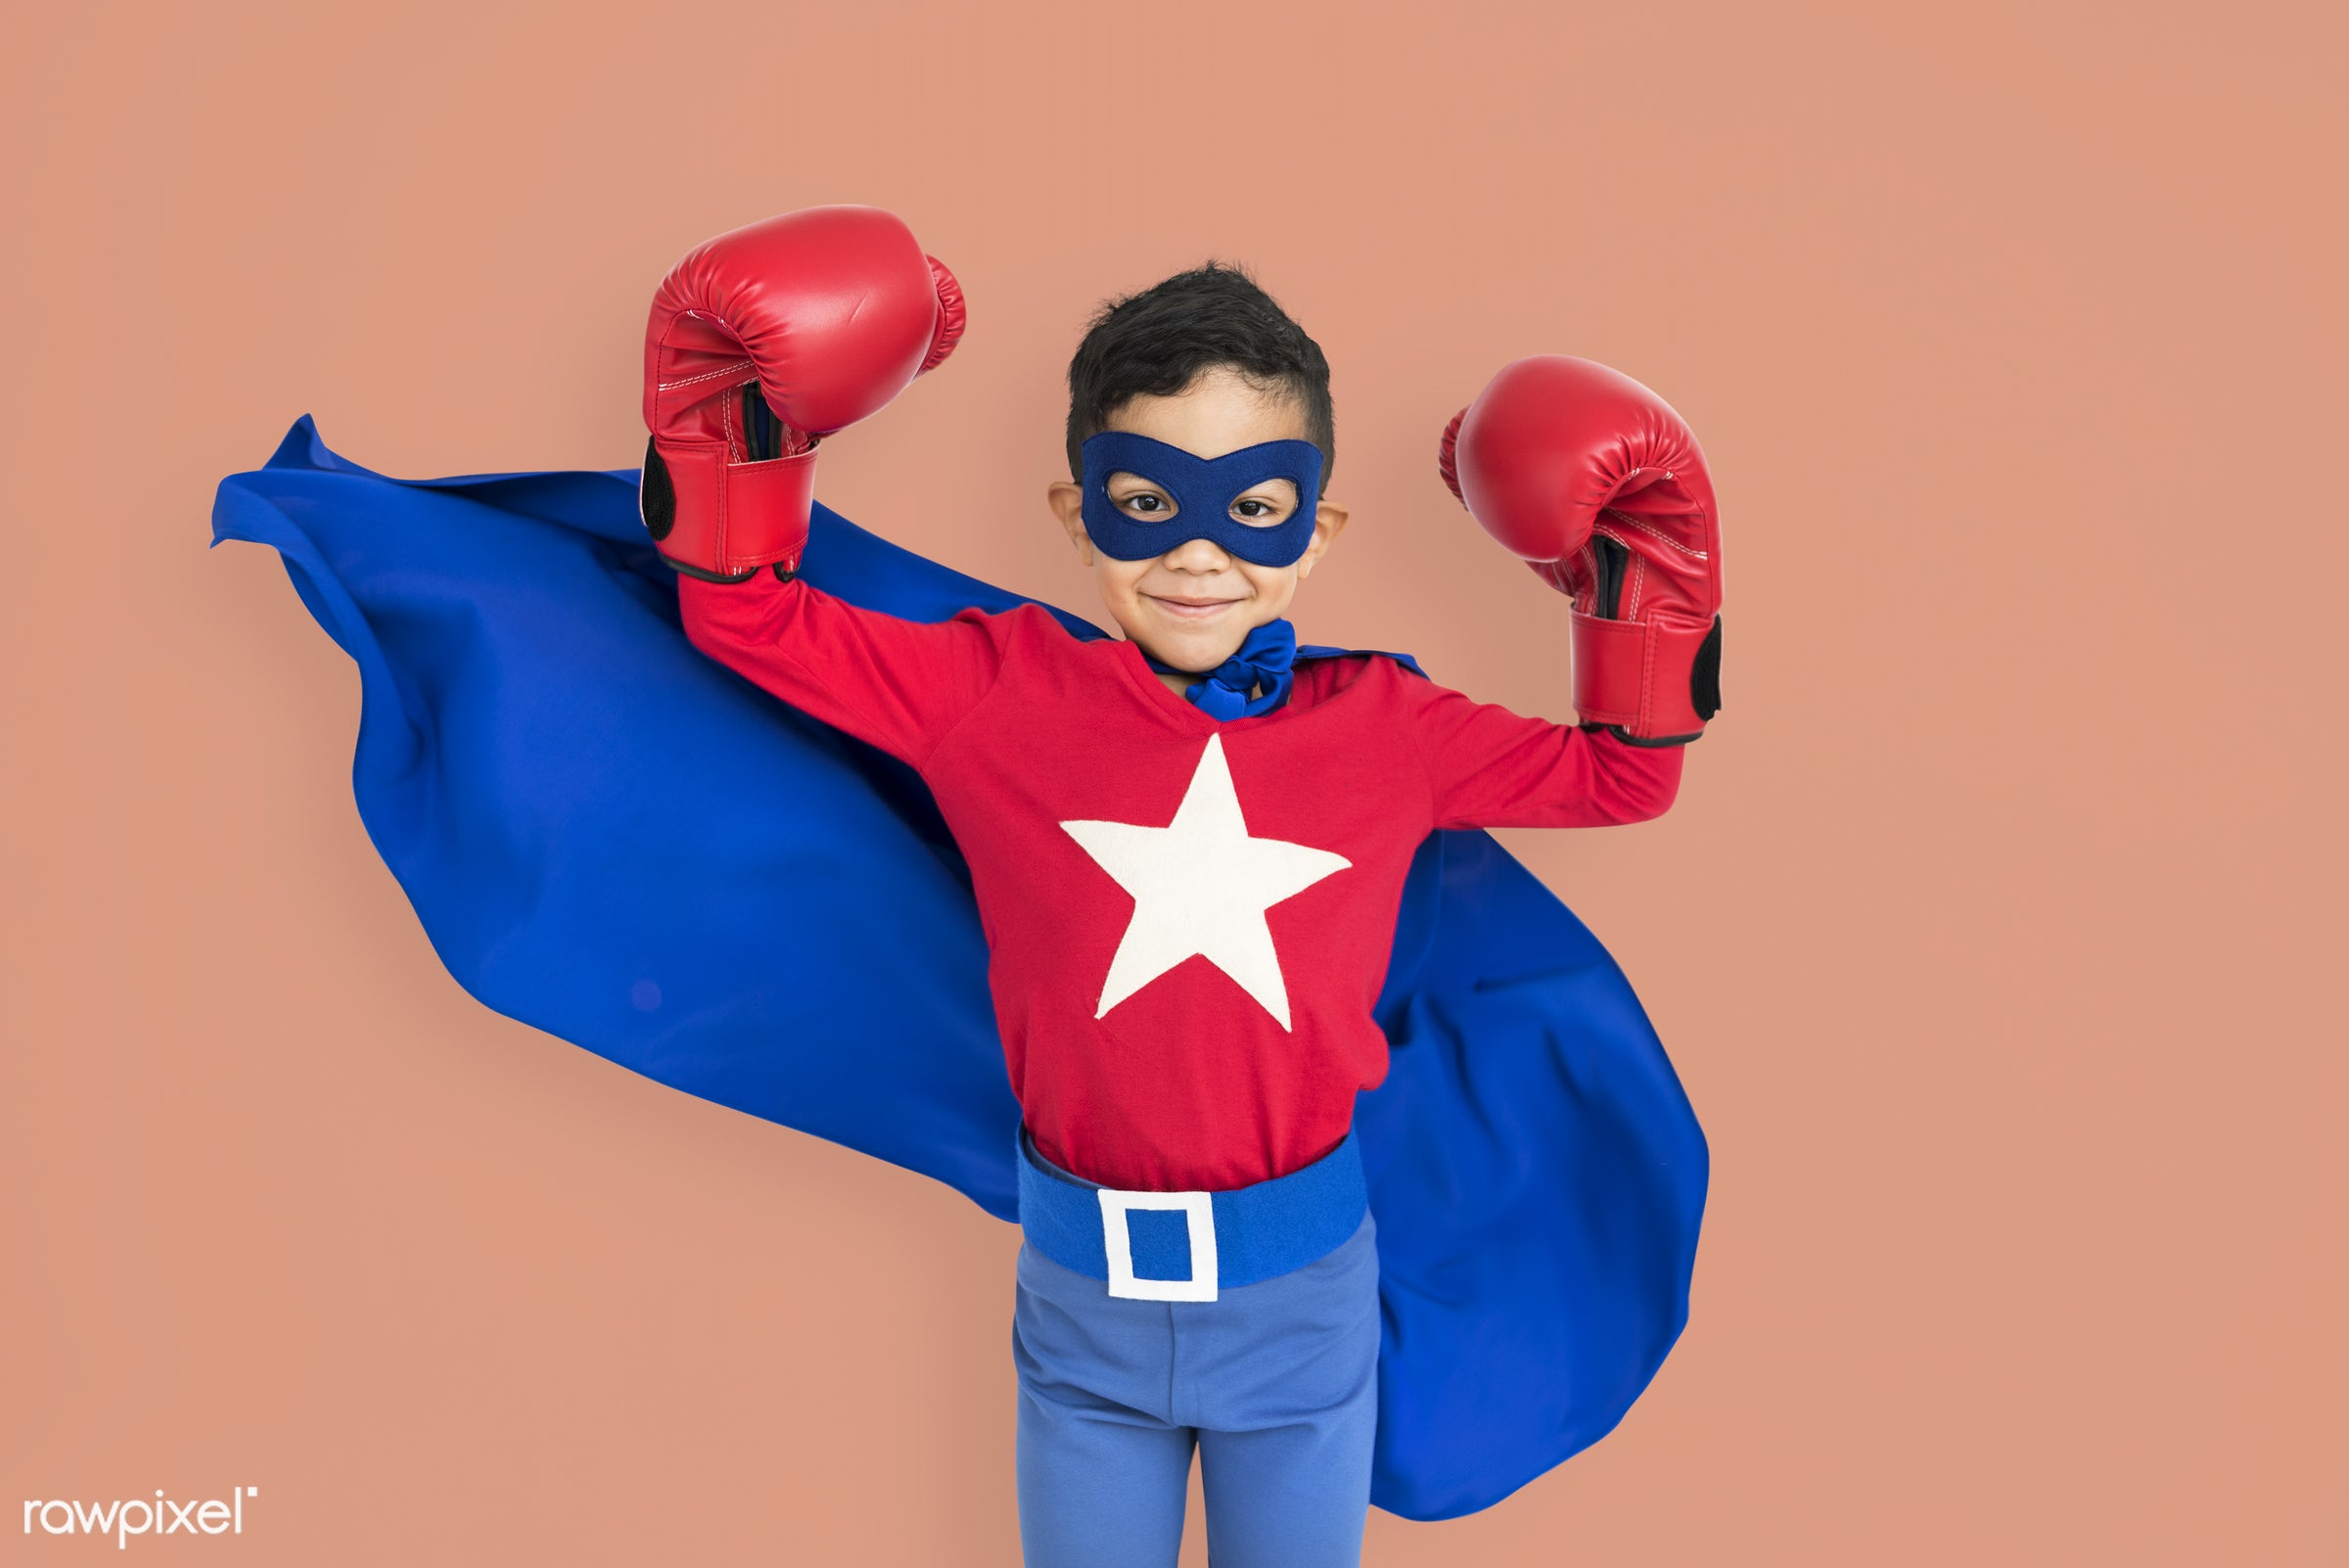 studio, expression, might, person, cape, joy, little, mask, cute, people, kid, smile, cheerful, smiling, superhero, isolated...